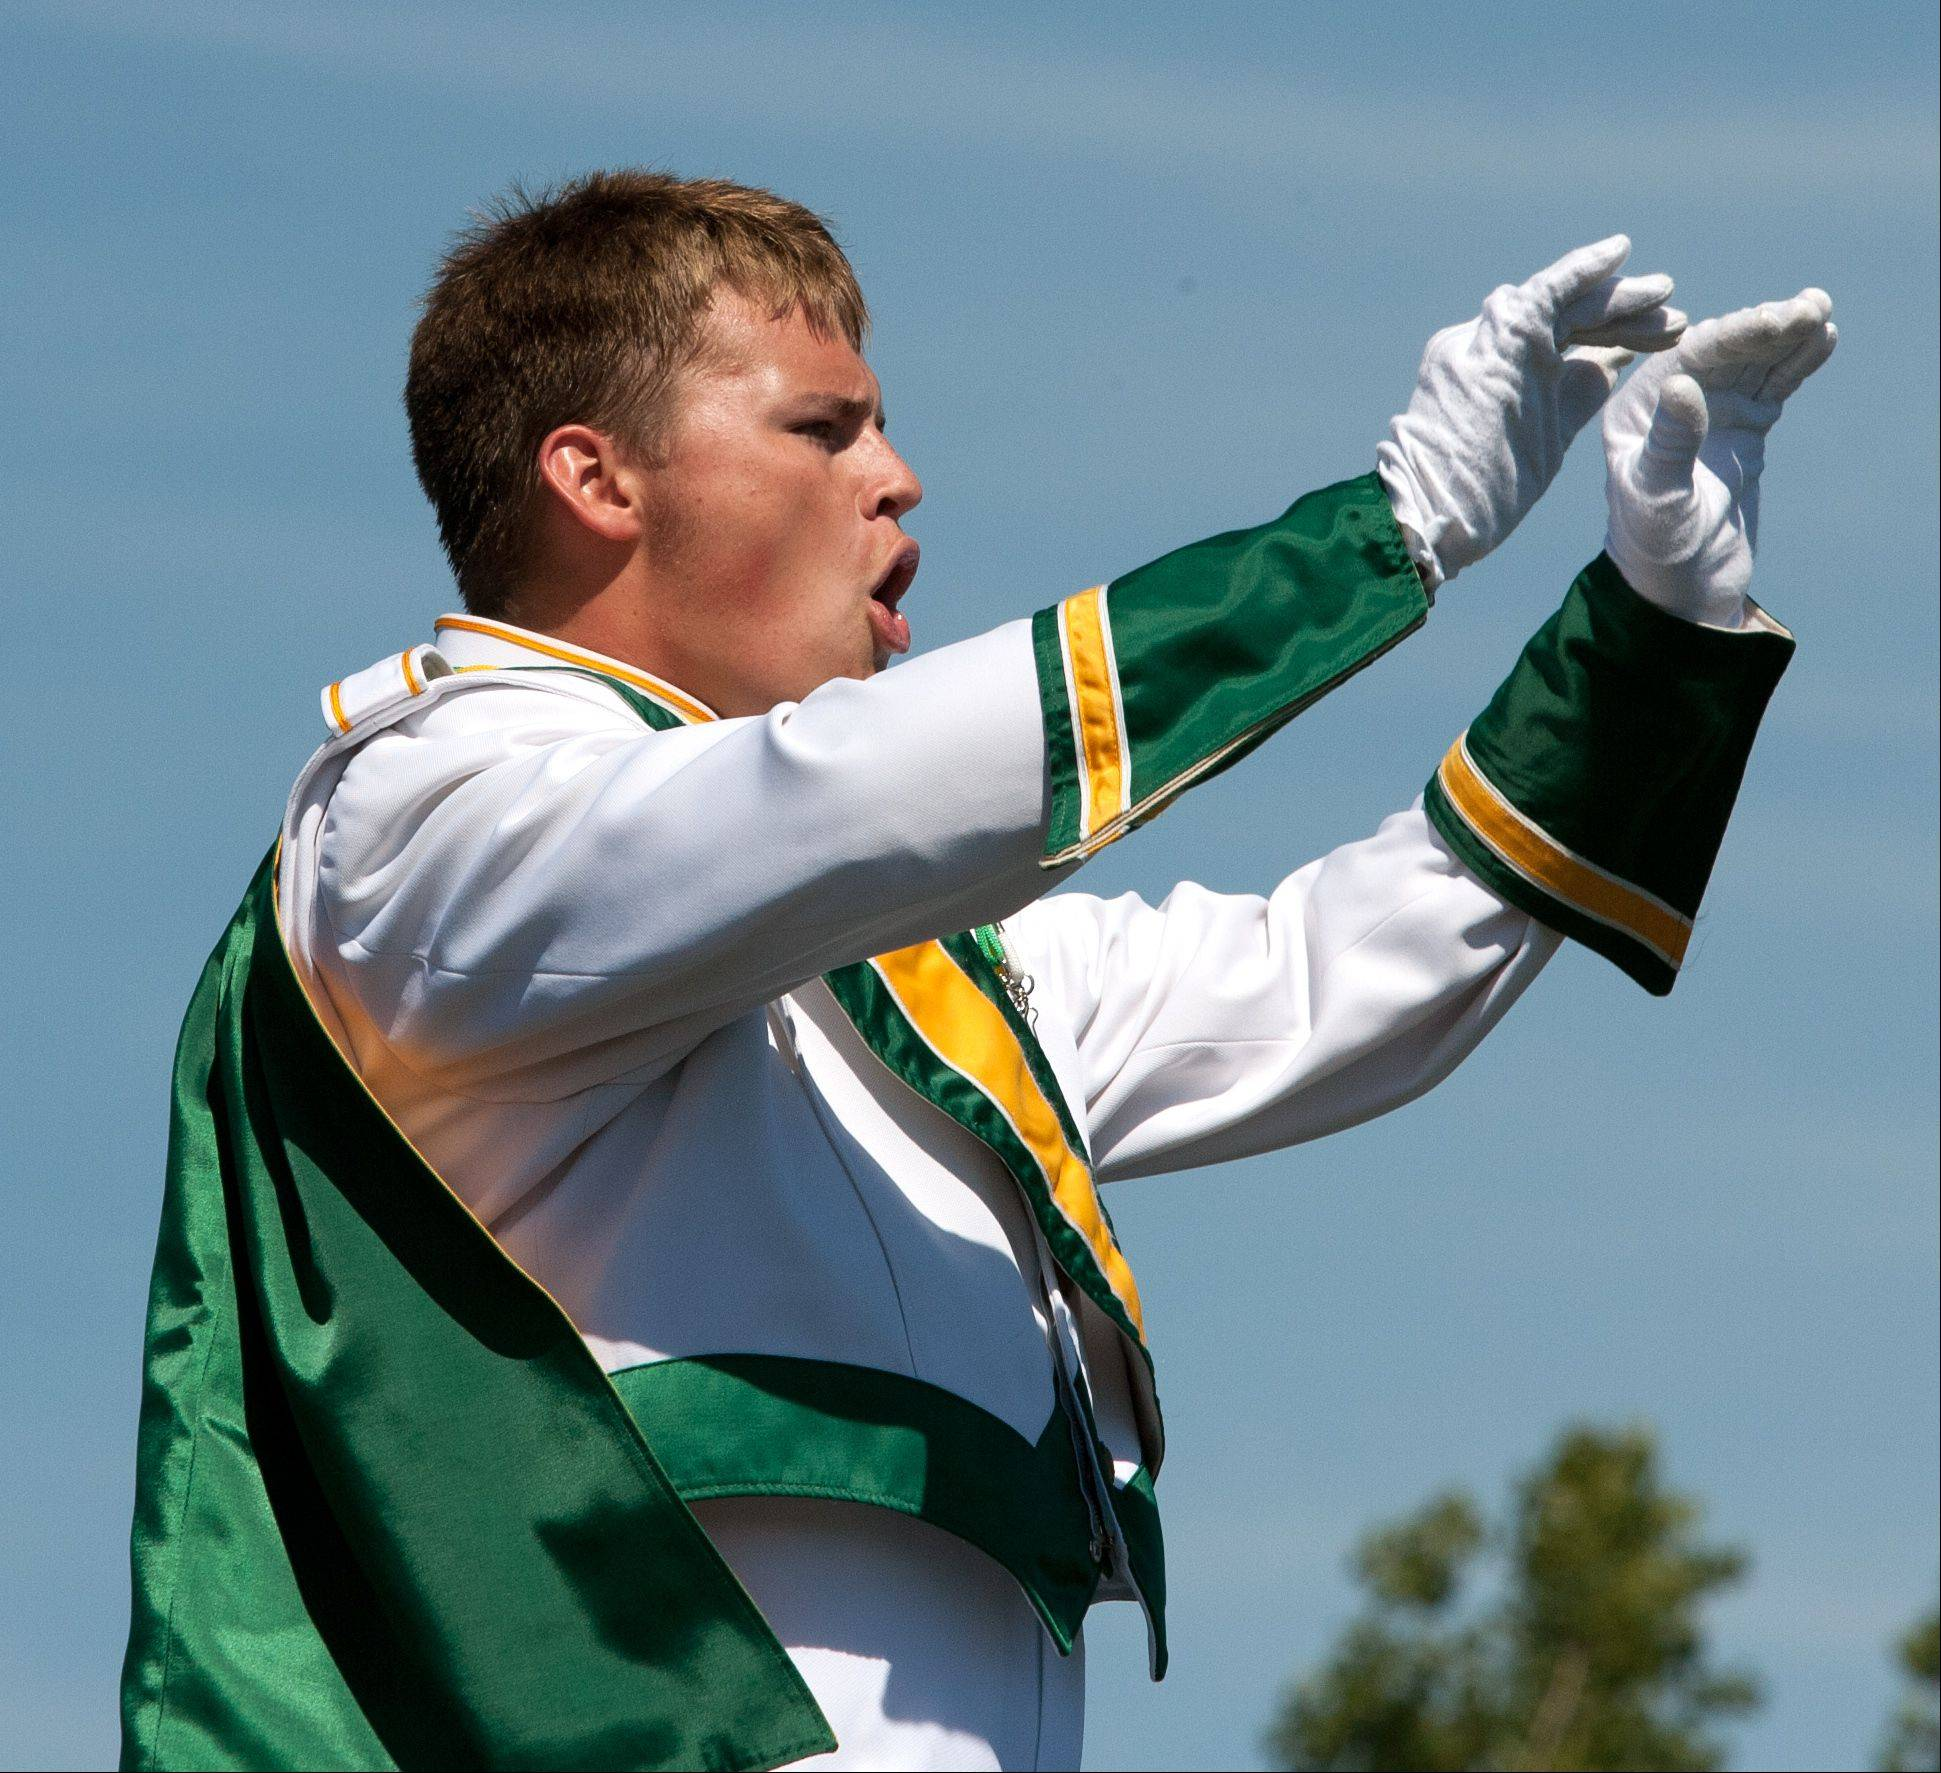 Waubonsie Valley High School Drum Major James O'Neill leads a marching band performance Saturday during the 35th annual Lancer Joust Marching Band Competition.